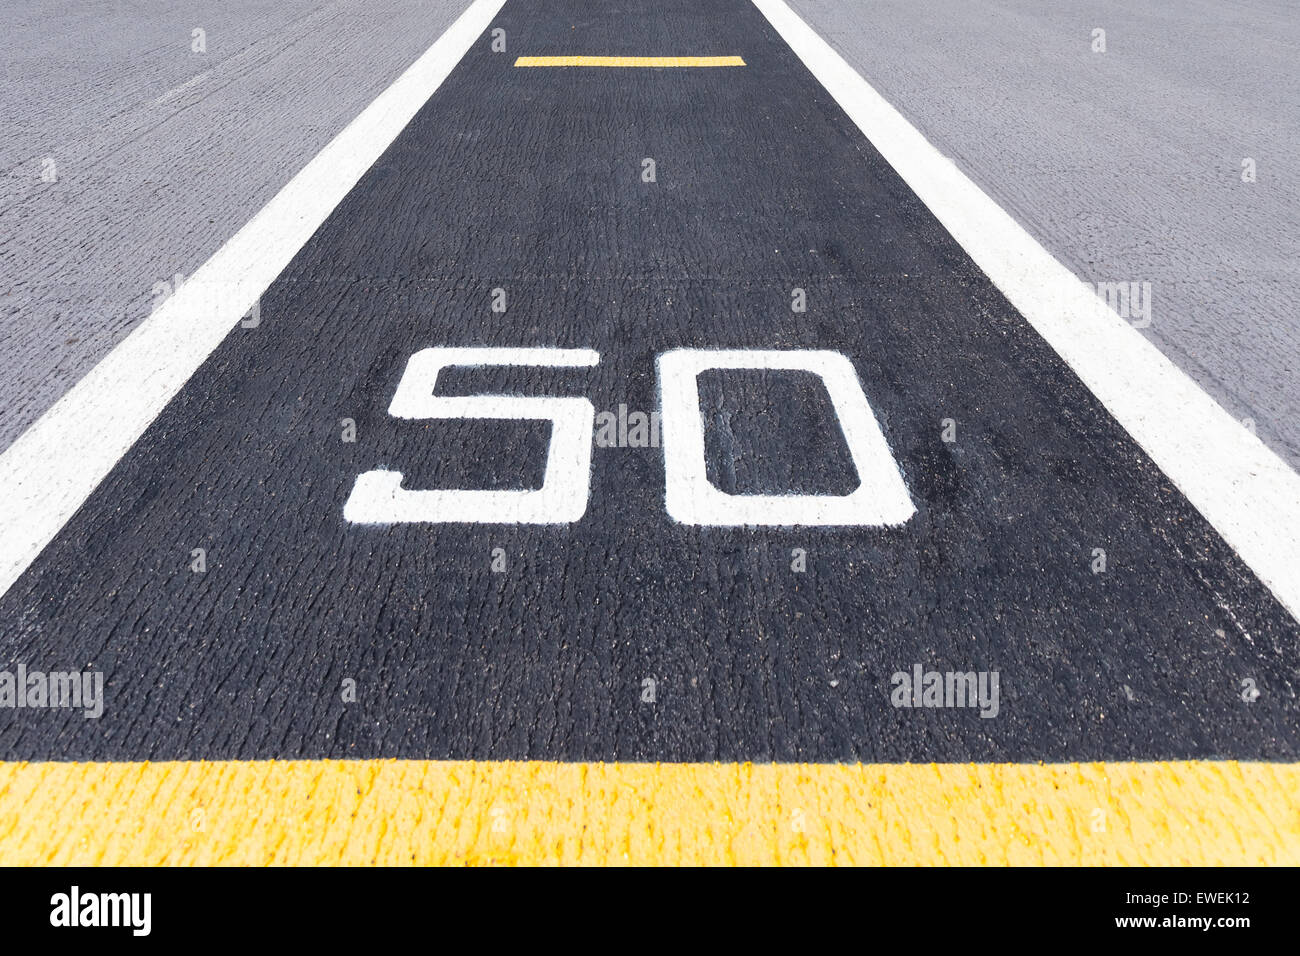 Fifty metre sign on the road. - Stock Image